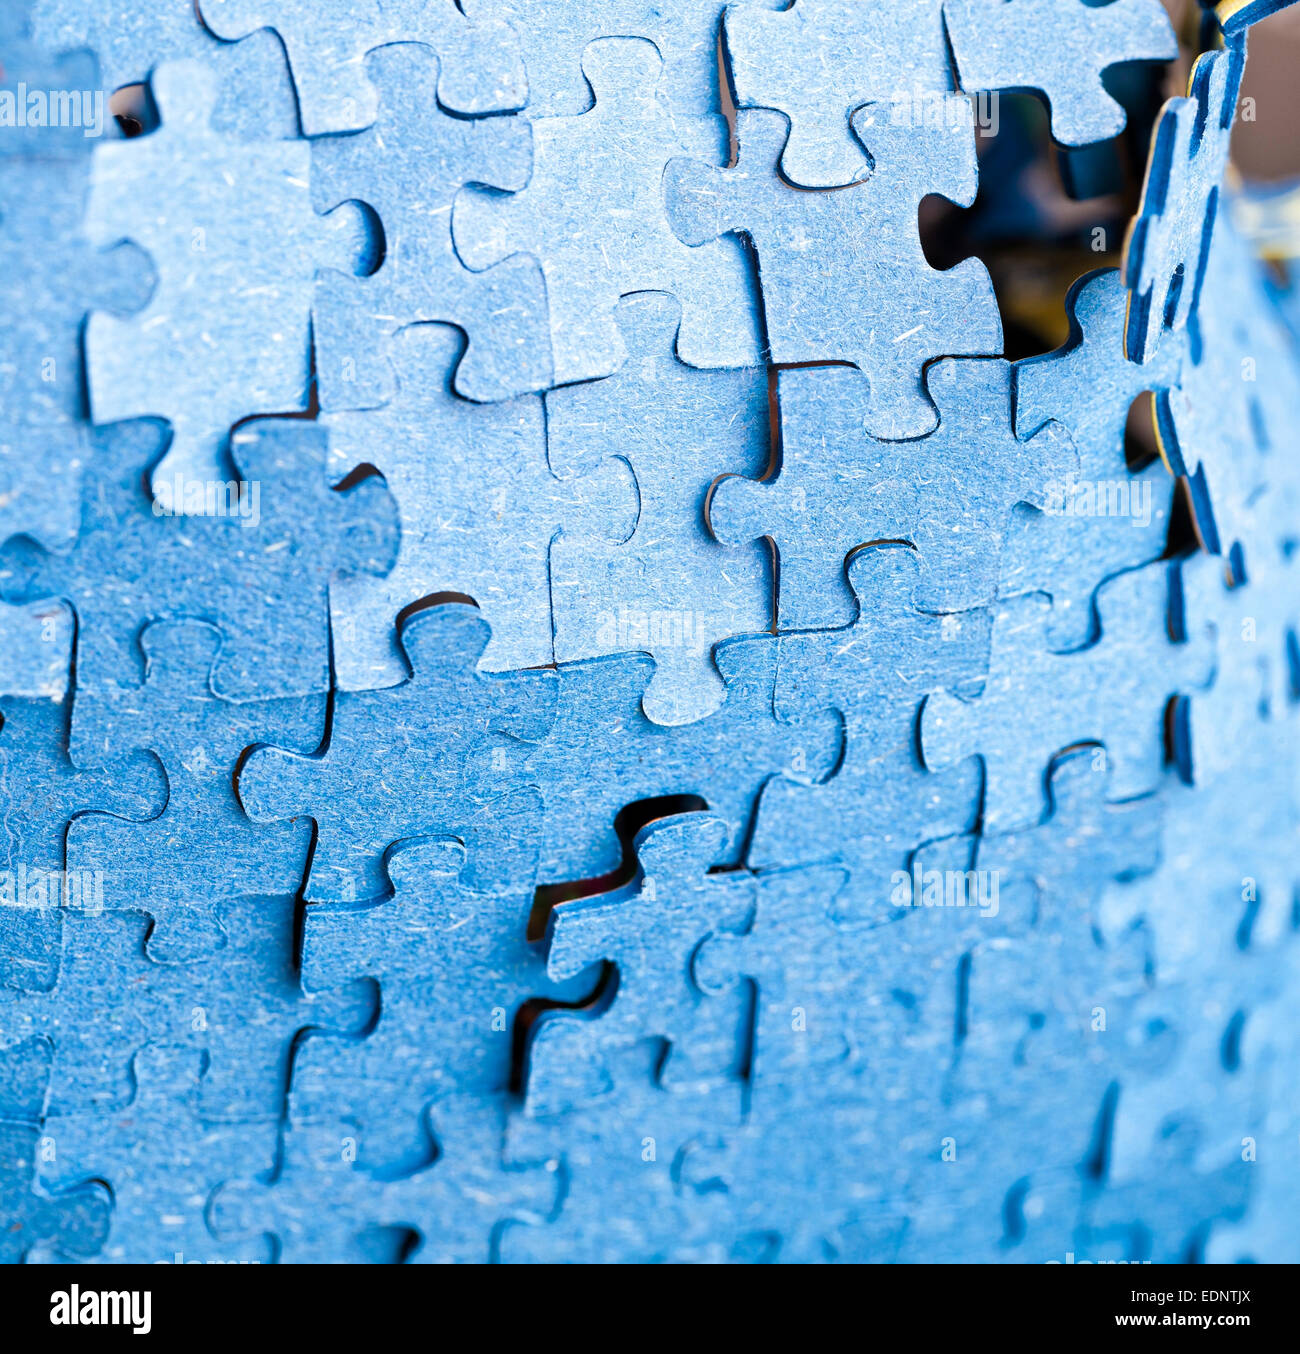 Real photograph of the backside of blue puzzle jigsaw in available light. - Stock Image